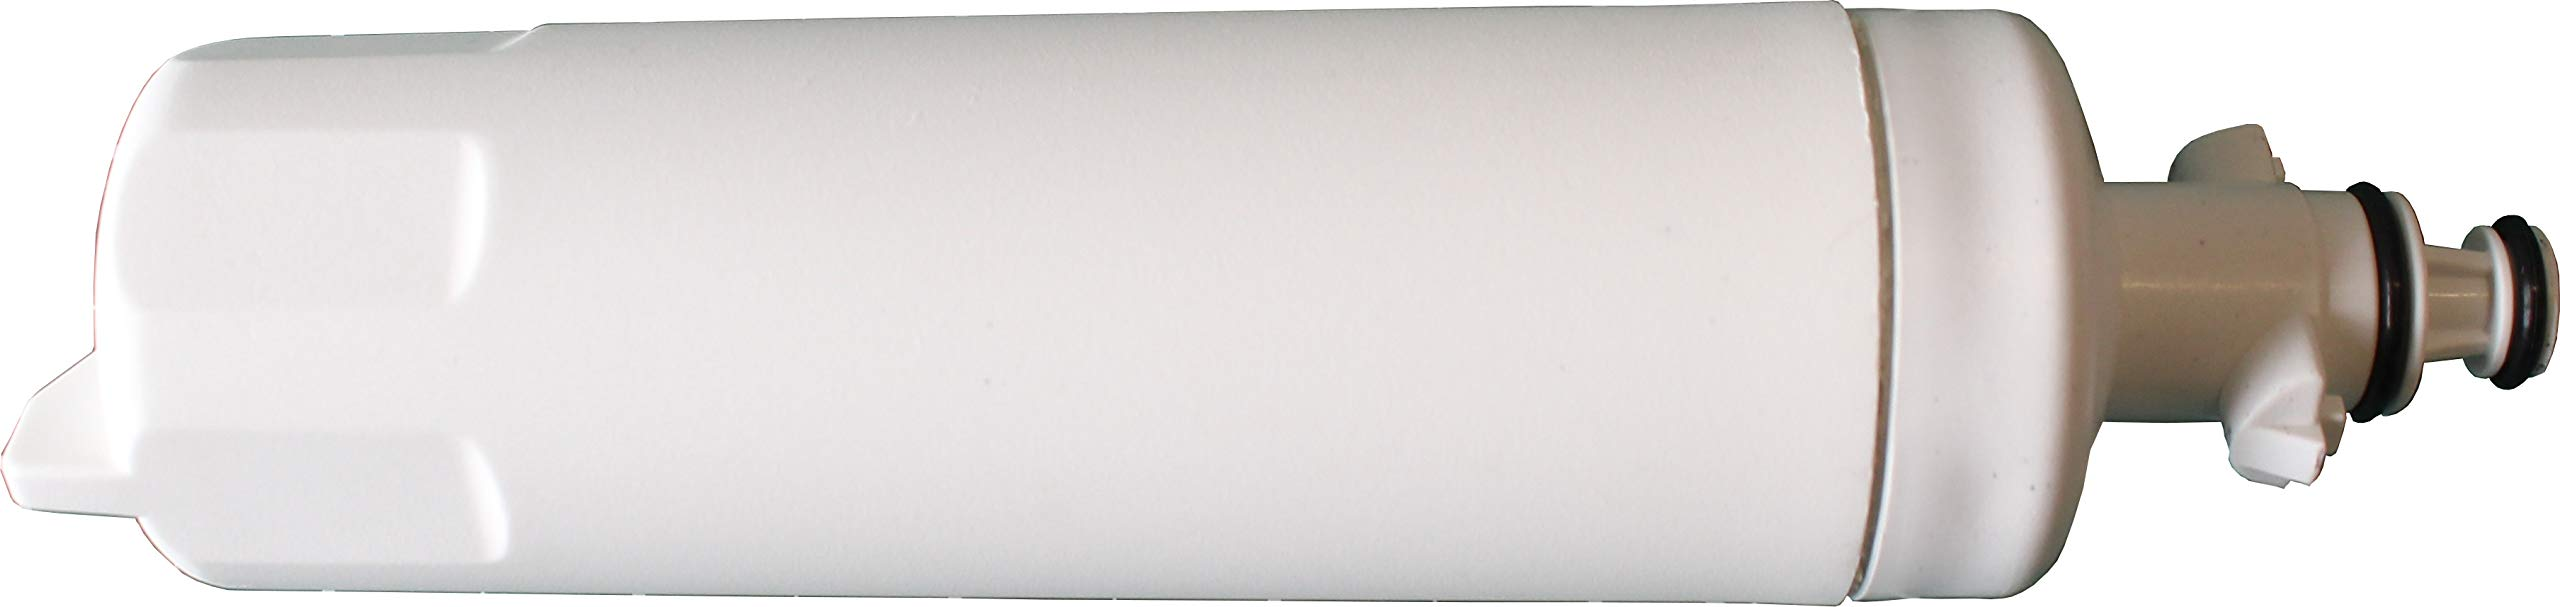 Replacement Refrigerator Water Filter Compatible with LG LT700P